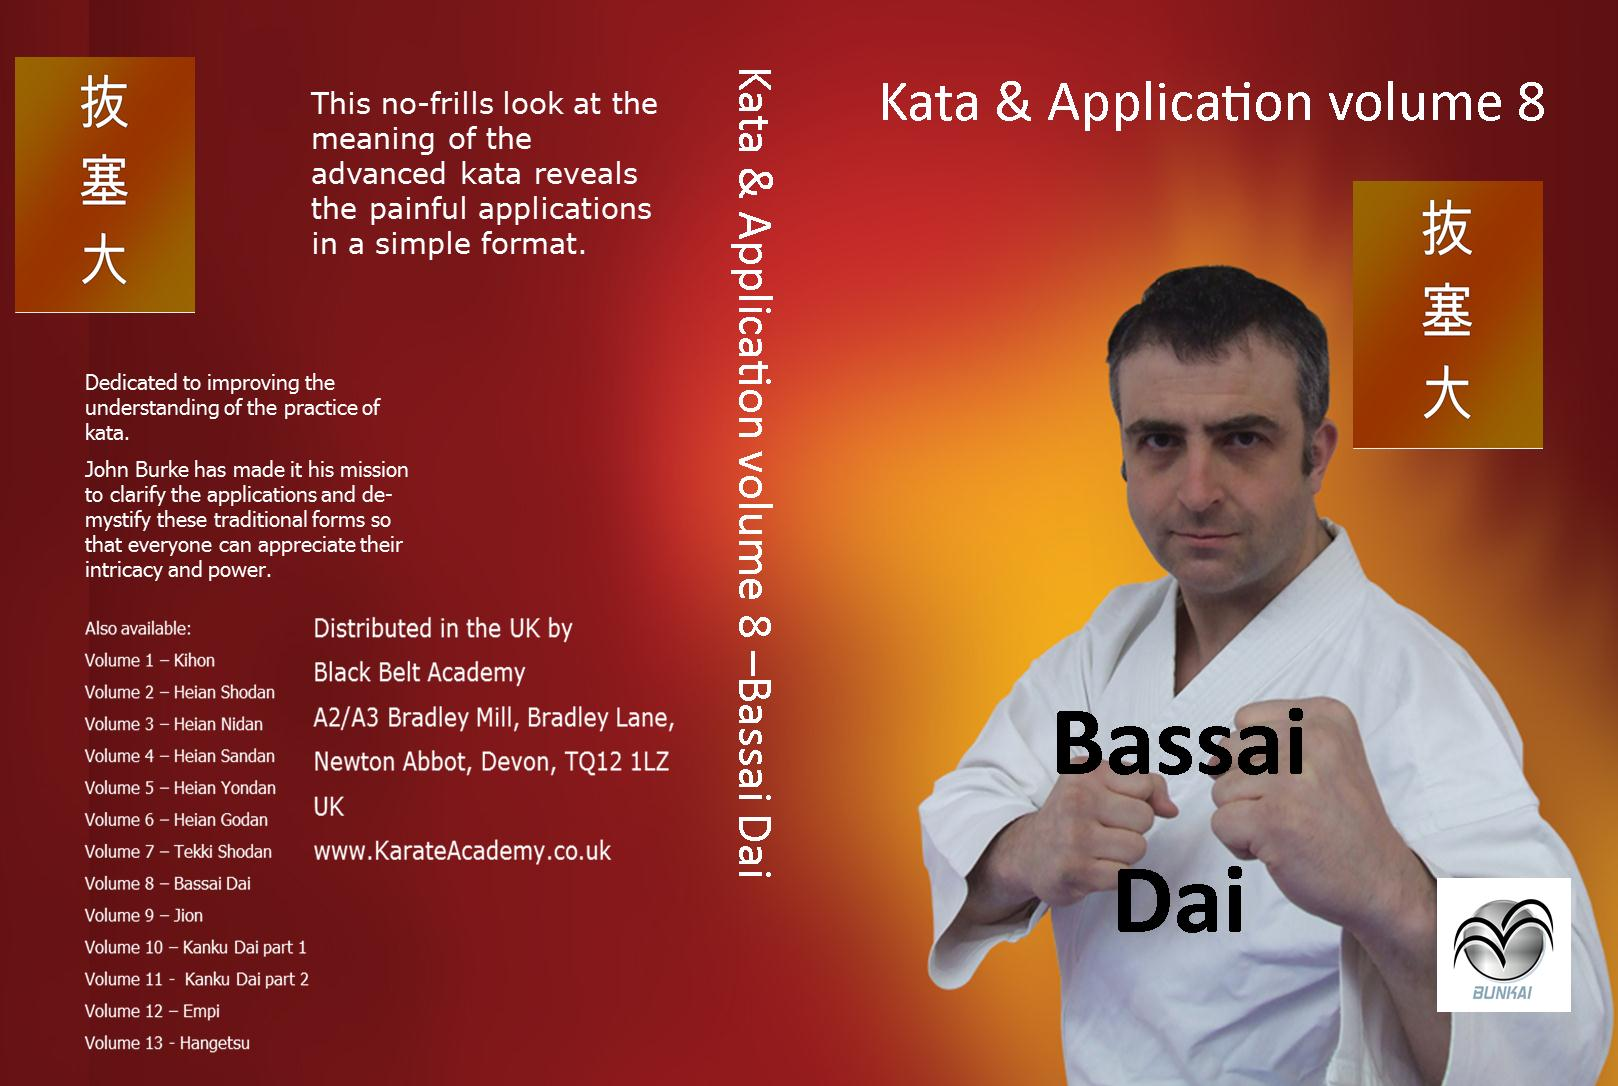 bassai dai bunkai applications